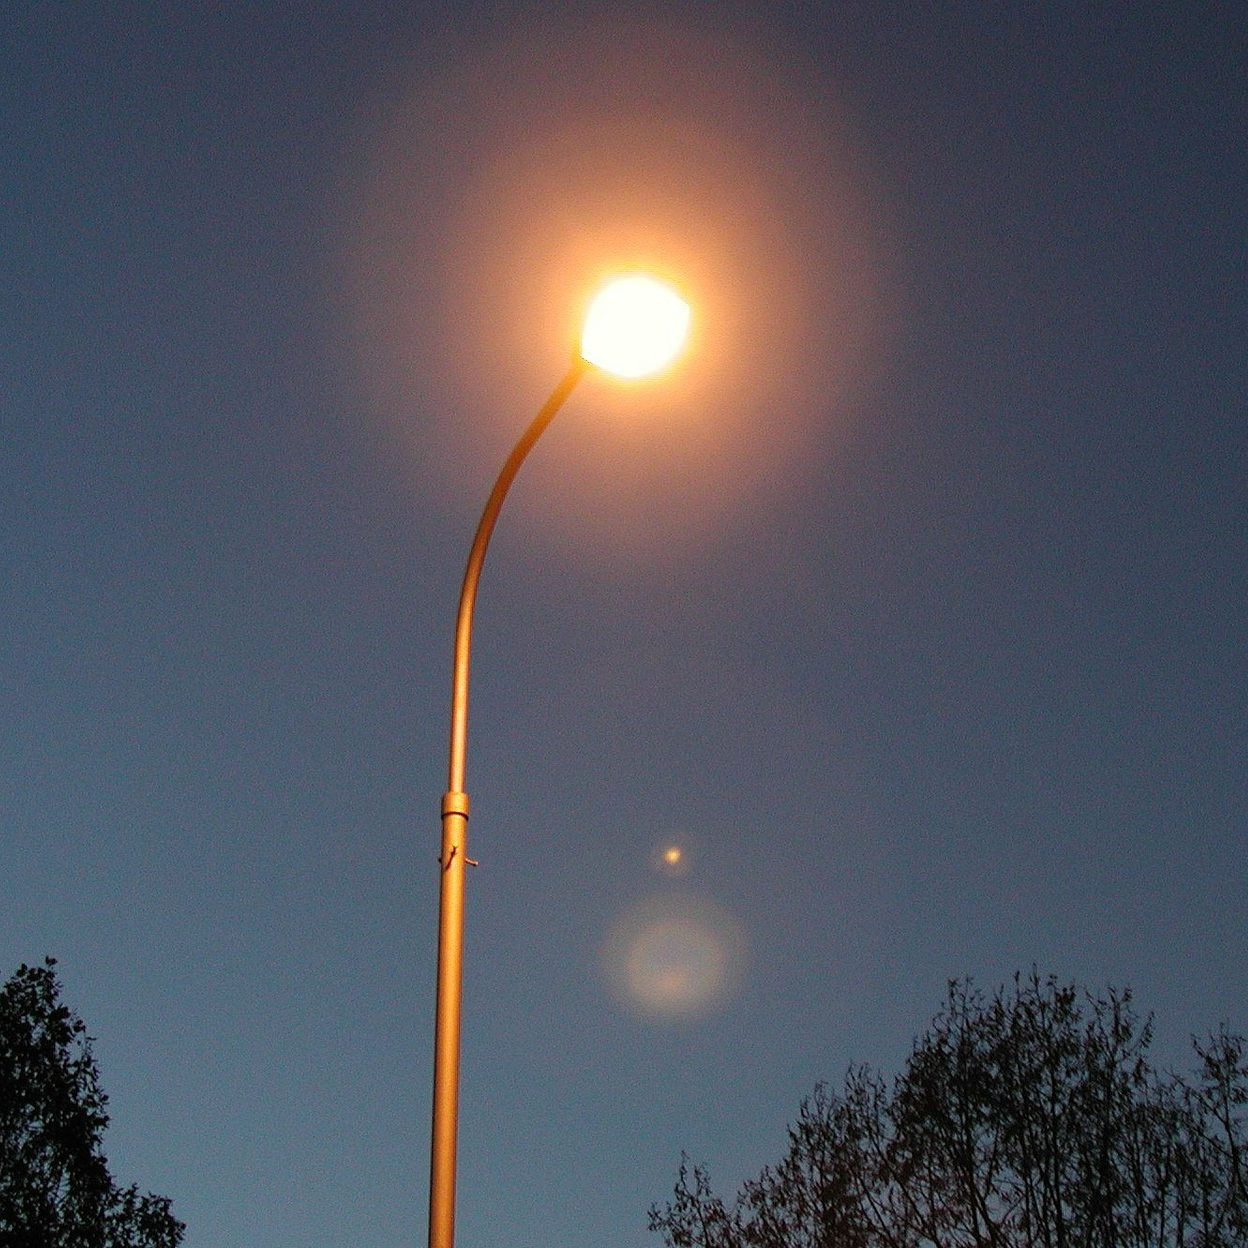 Financing models for dynamic, intelligent, and energy efficient urban street lighting